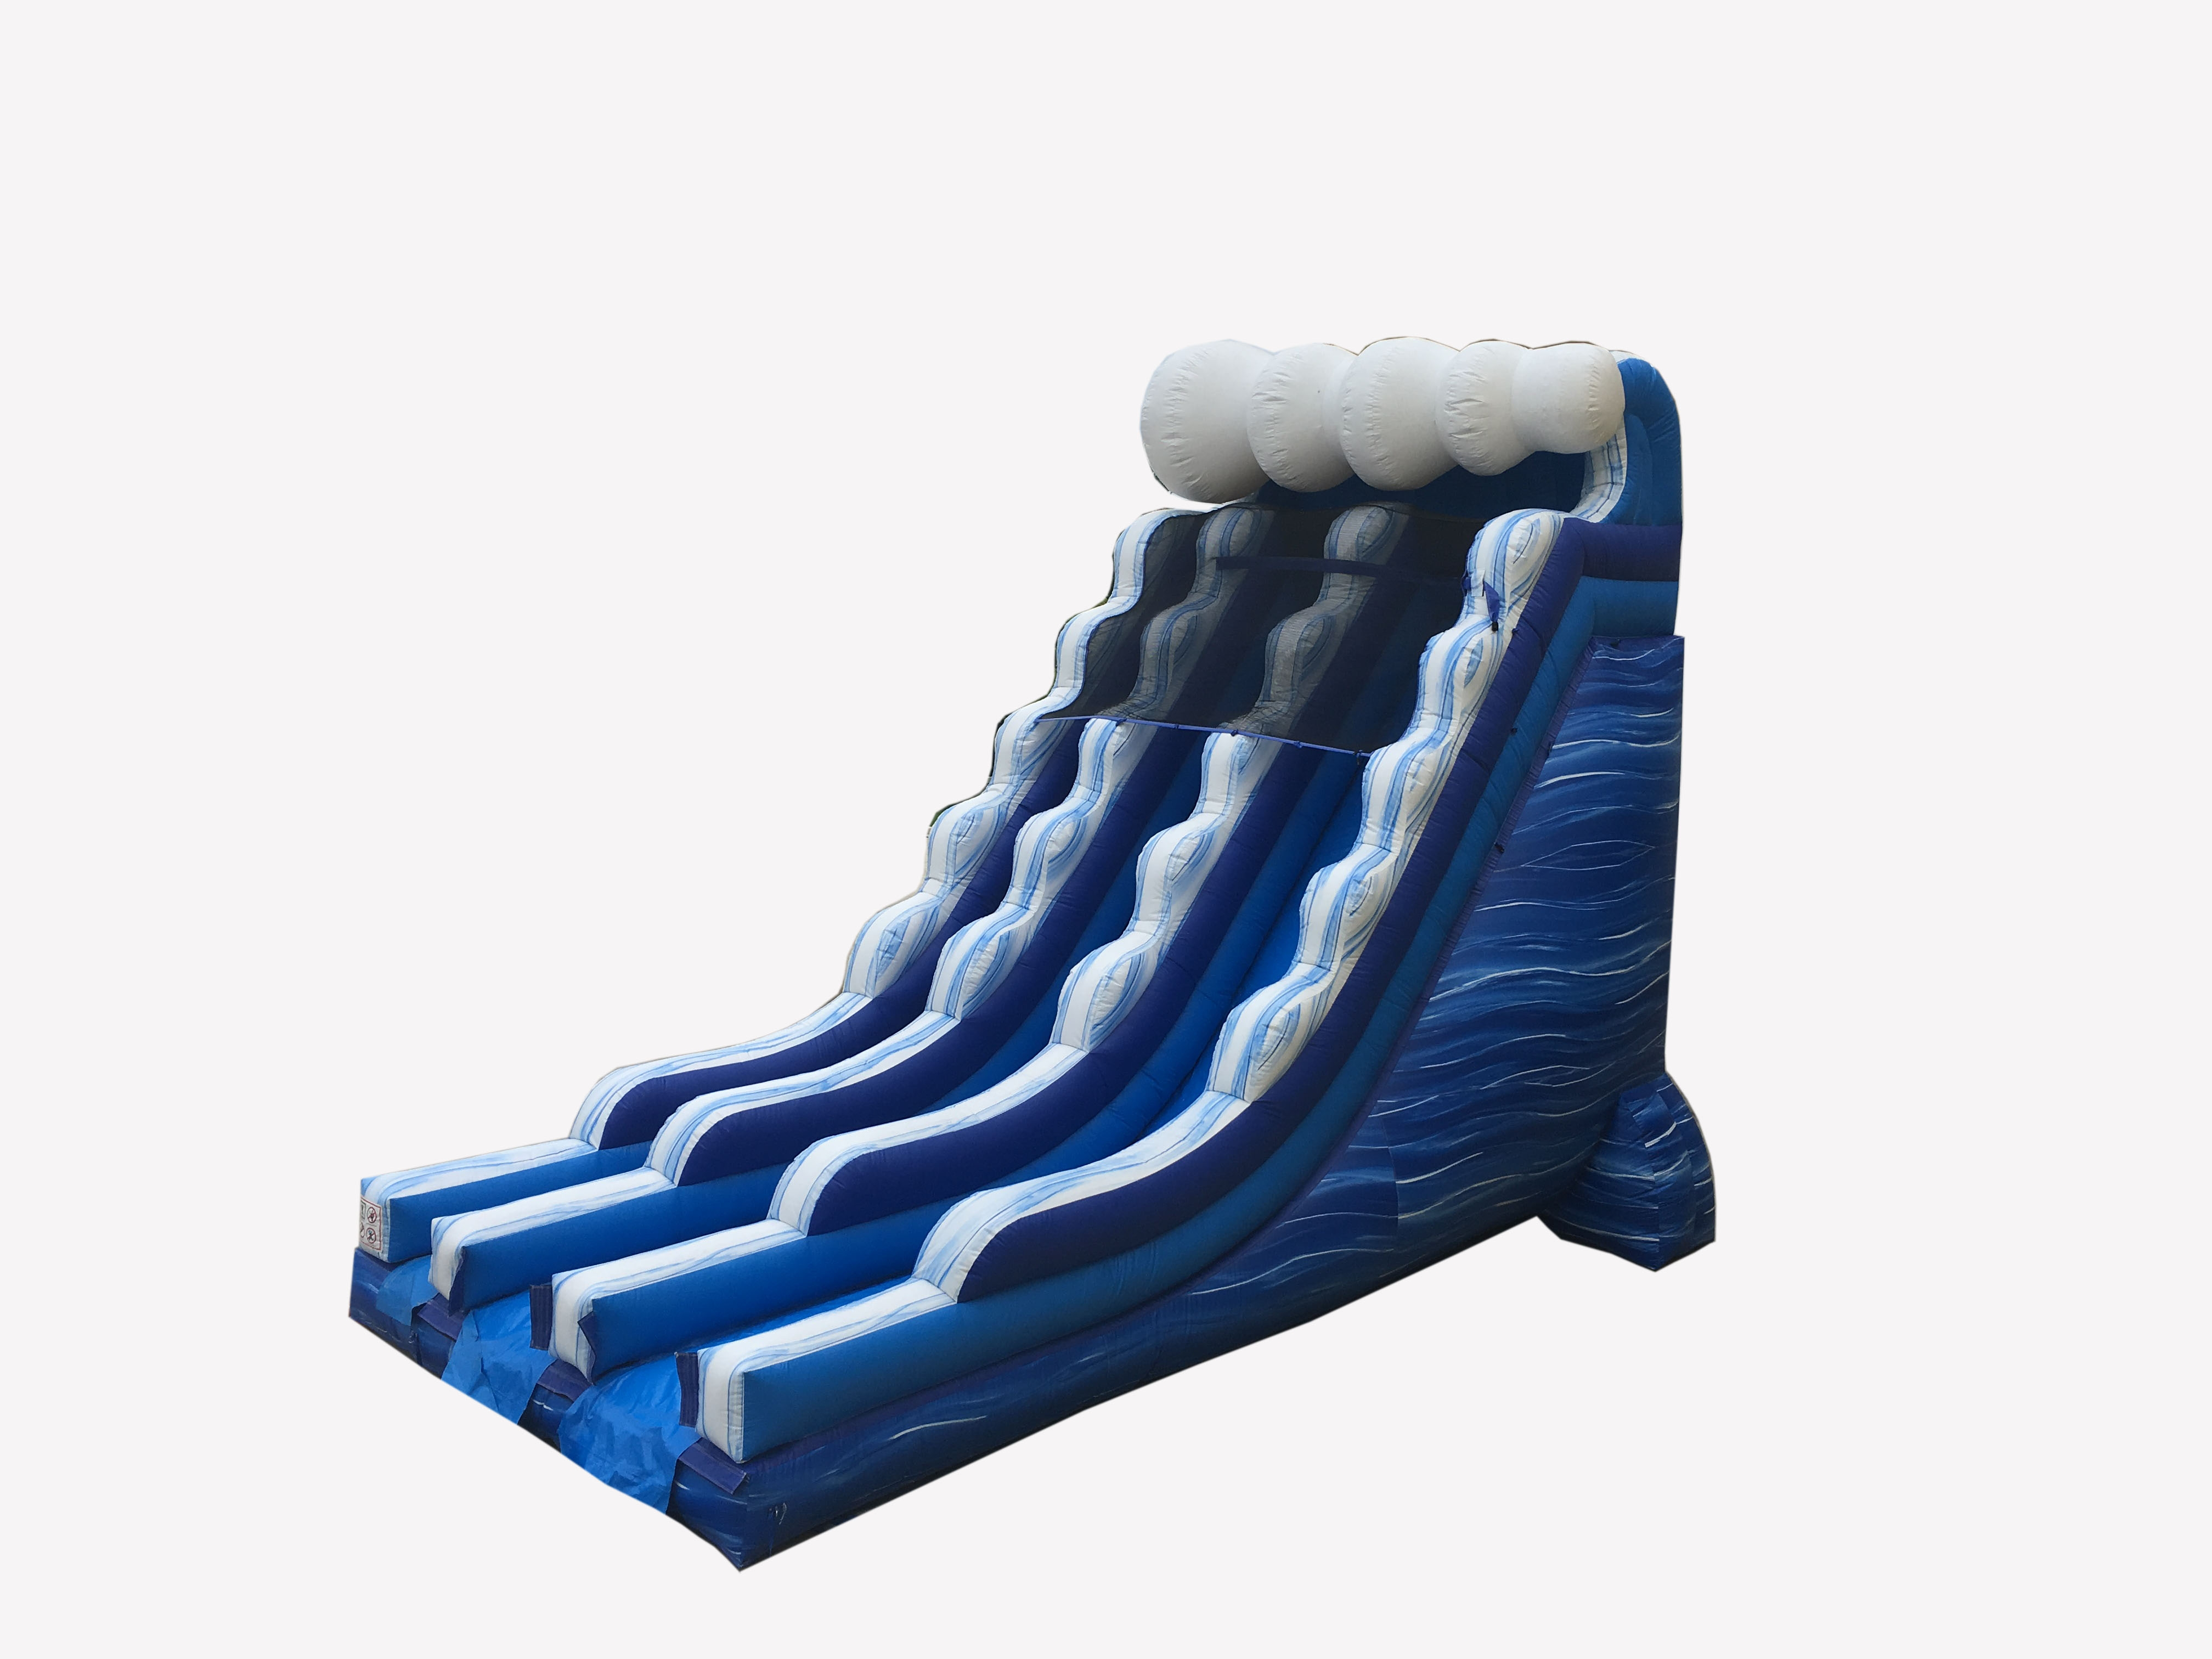 Pogo 22' Blue Marble Commercial Kids Inflatable Double Lane Waterslide with Blower by Pogo Bounce House